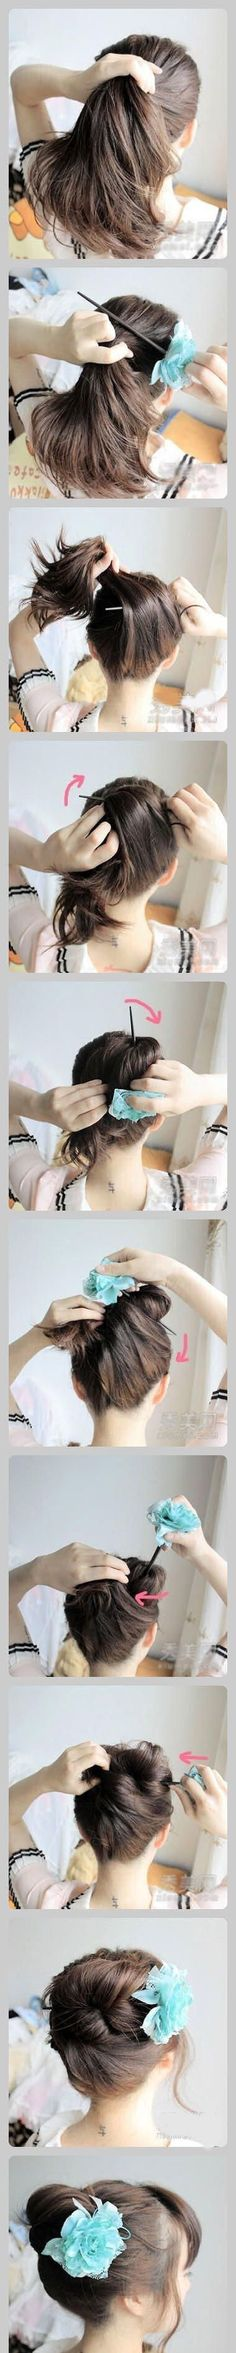 diy updo hair style, I always do this with a pencil...I just need to glue a flower to it lol! #quickfix